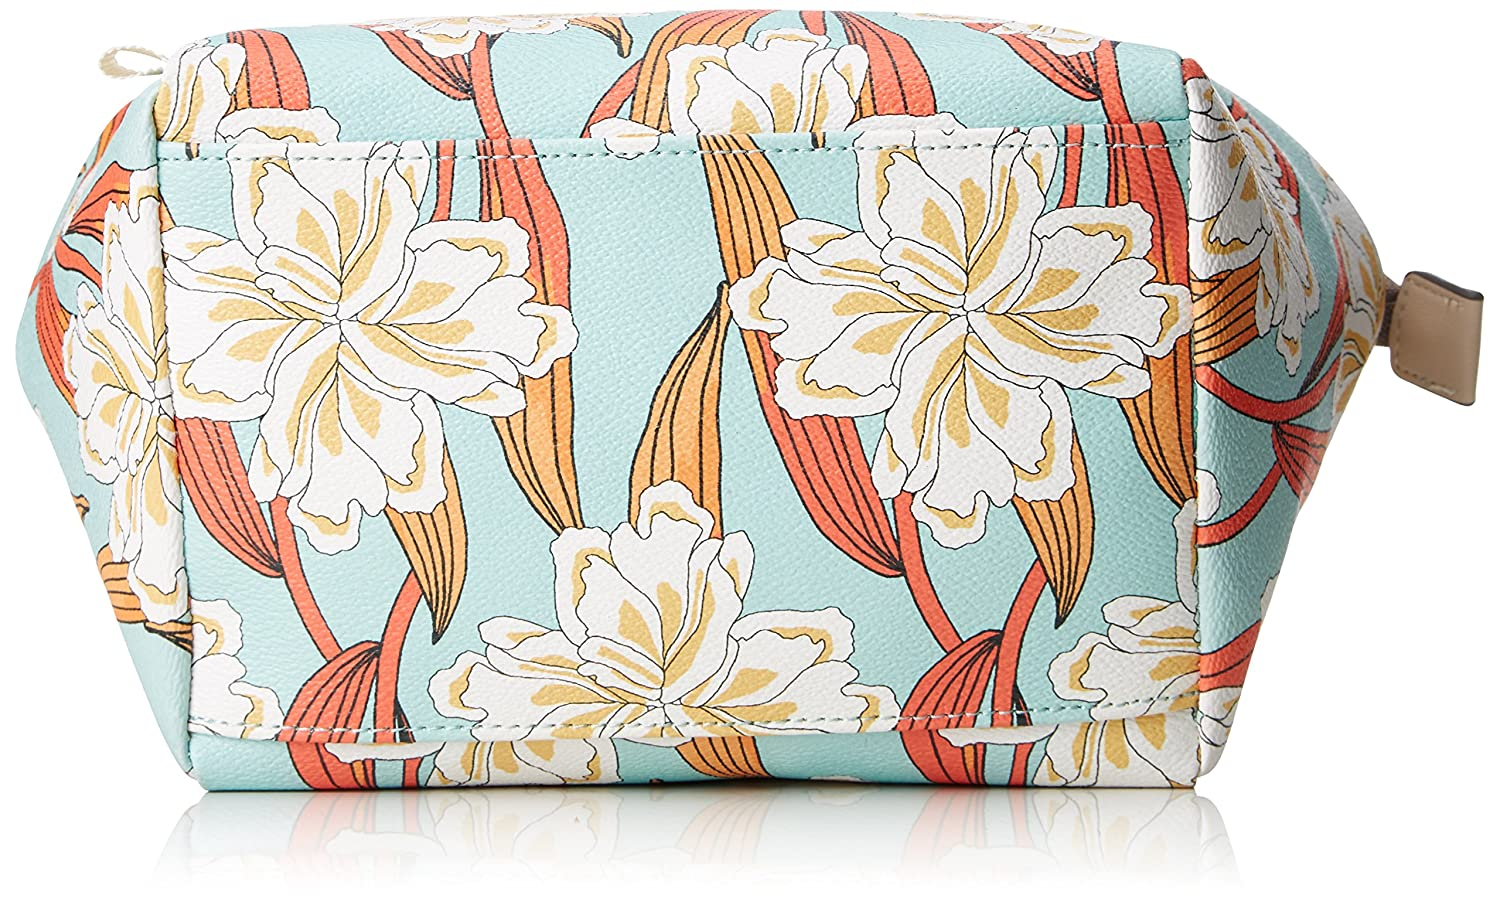 B x H T 12x22x22 cm Turquesa Light Turquoise Organizadores de bolso Mujer Oilily Jolly Ornament Washbag Mhz 2